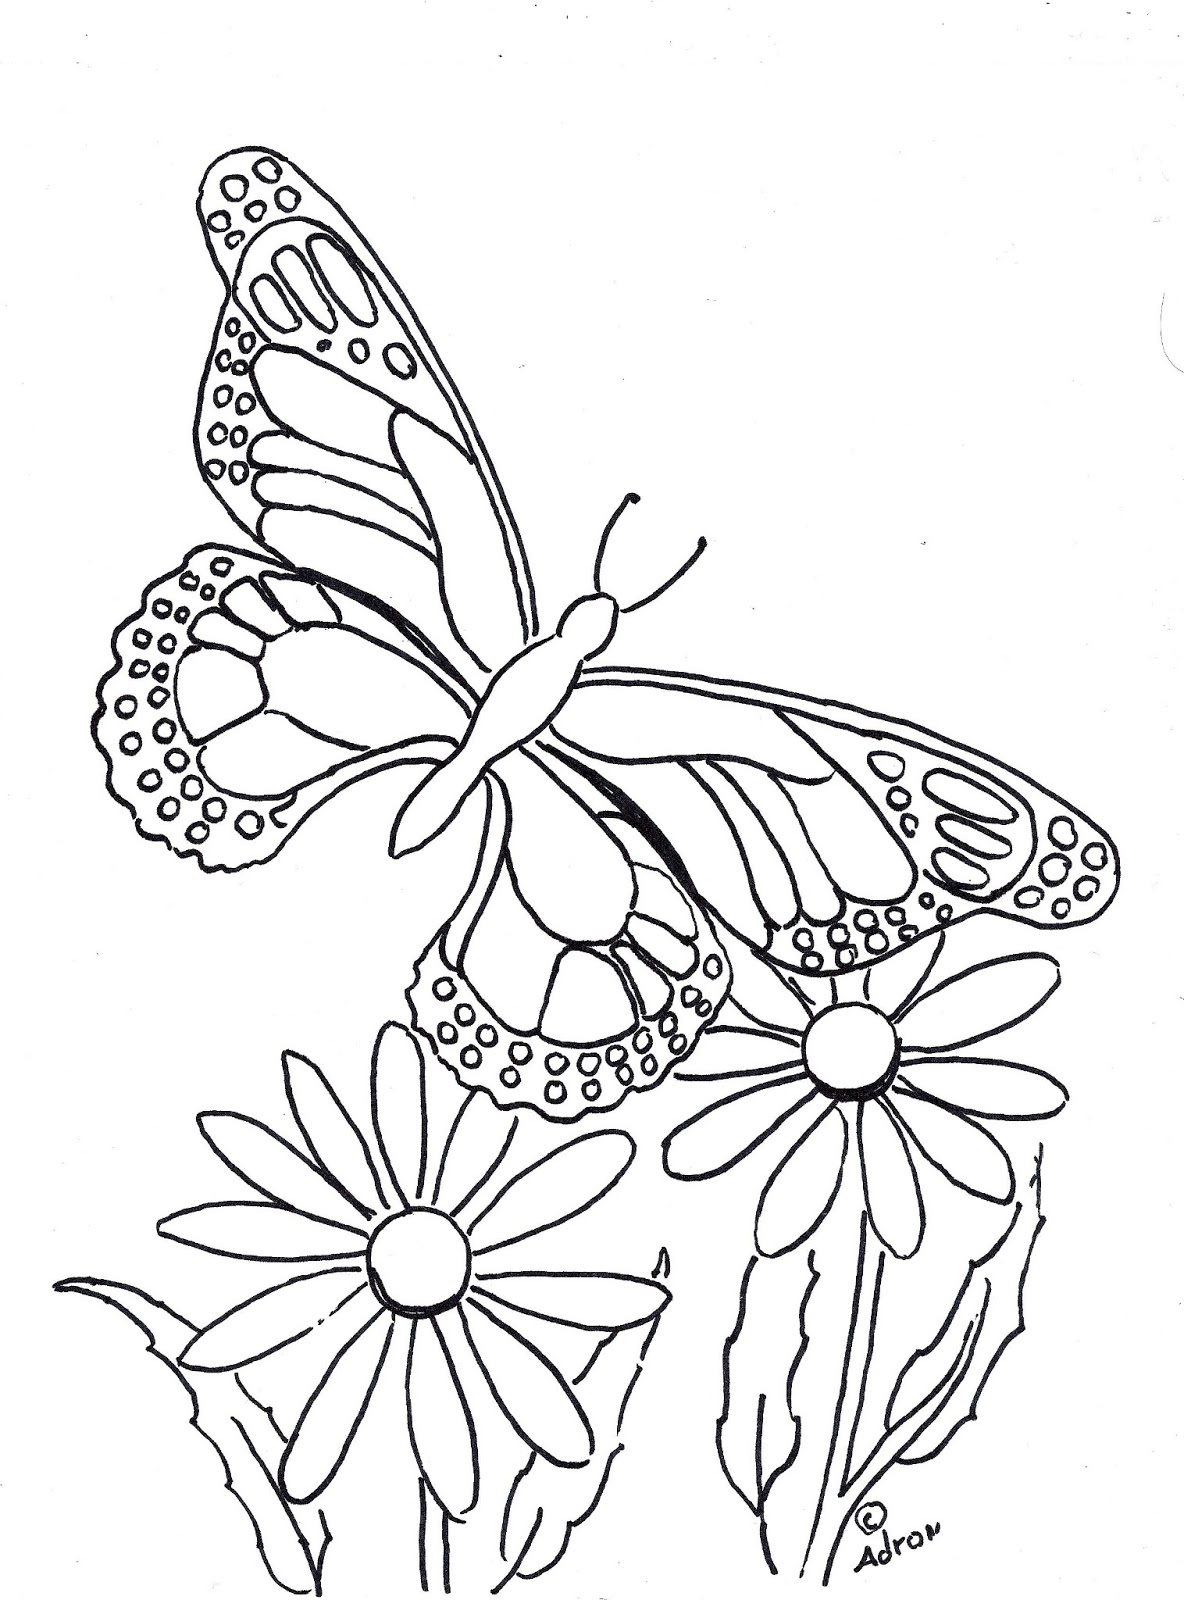 Coloring pages for kids by mr adron butterfly coloring for Butterfly coloring pages